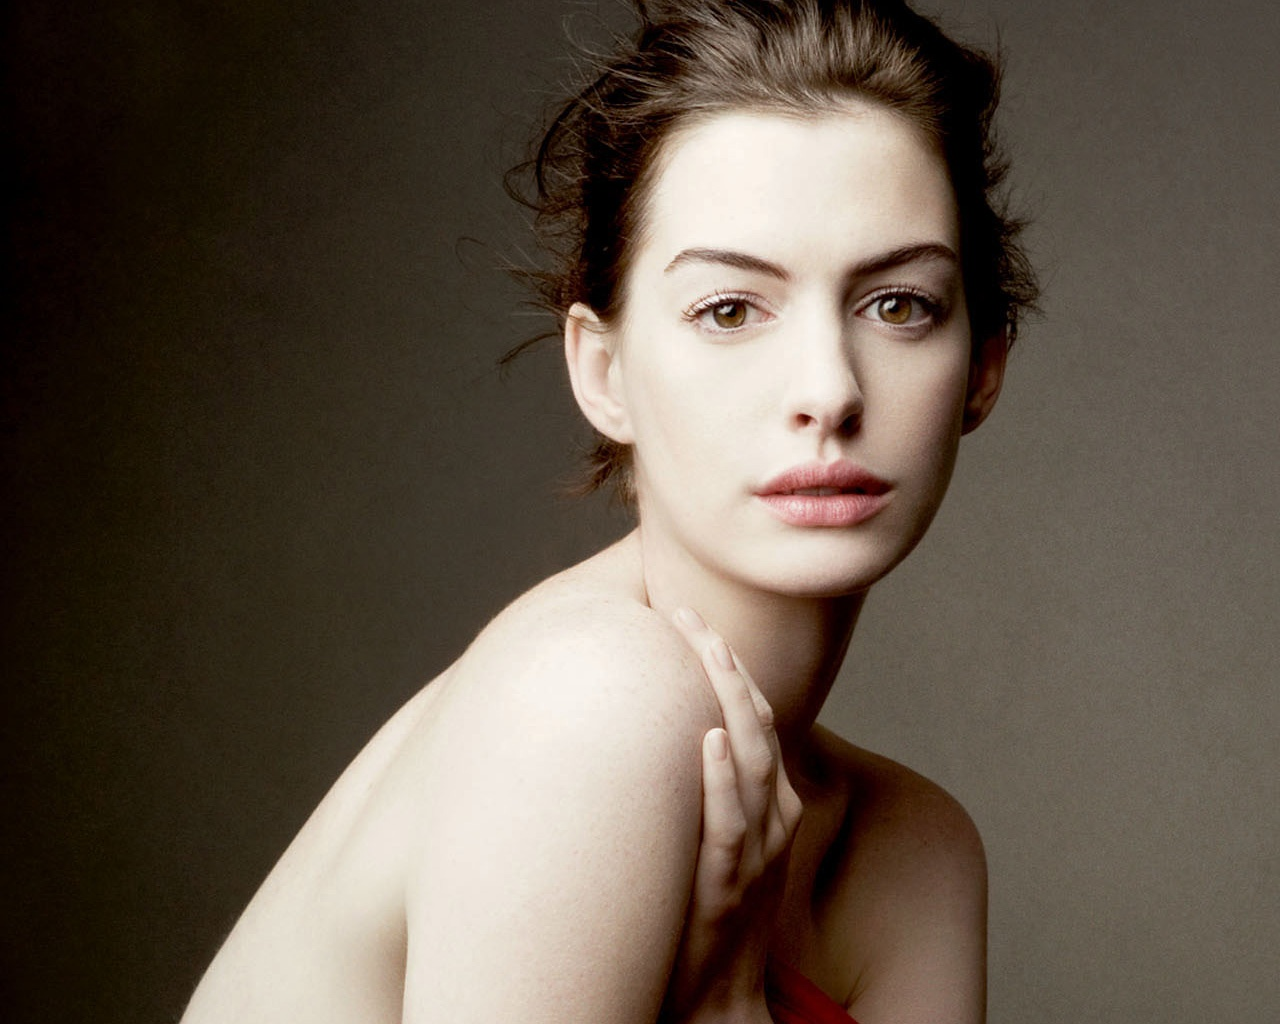 anne hathaway images hd A12